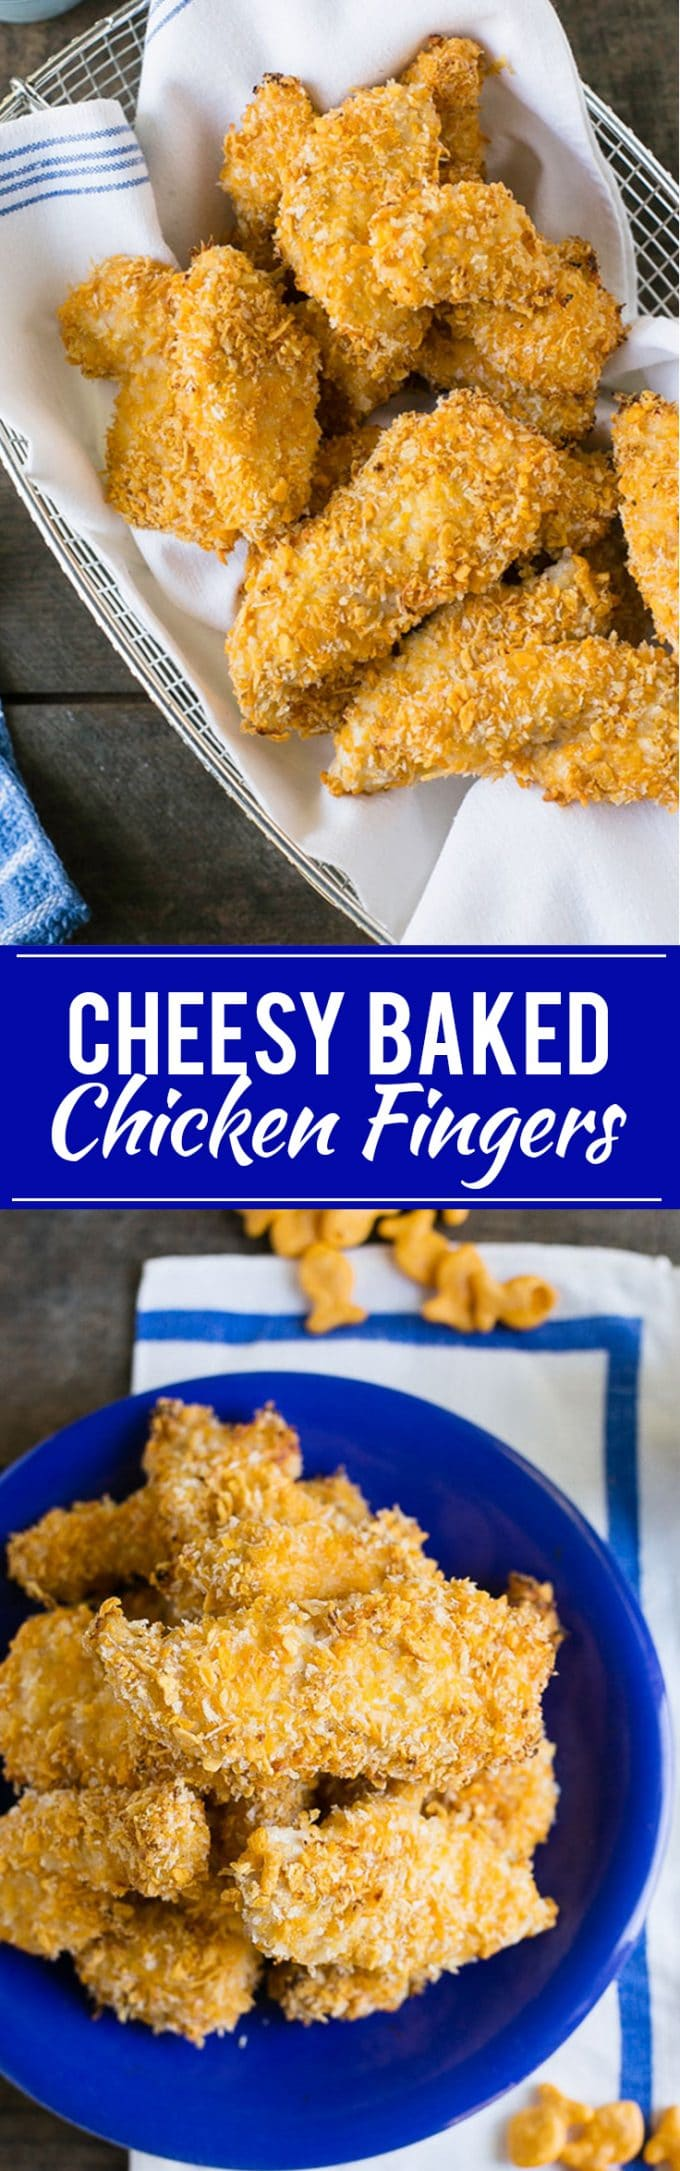 These cheesy baked chicken fingers are coated with your favorite cheddar crackers and baked to crispy perfection in the oven.